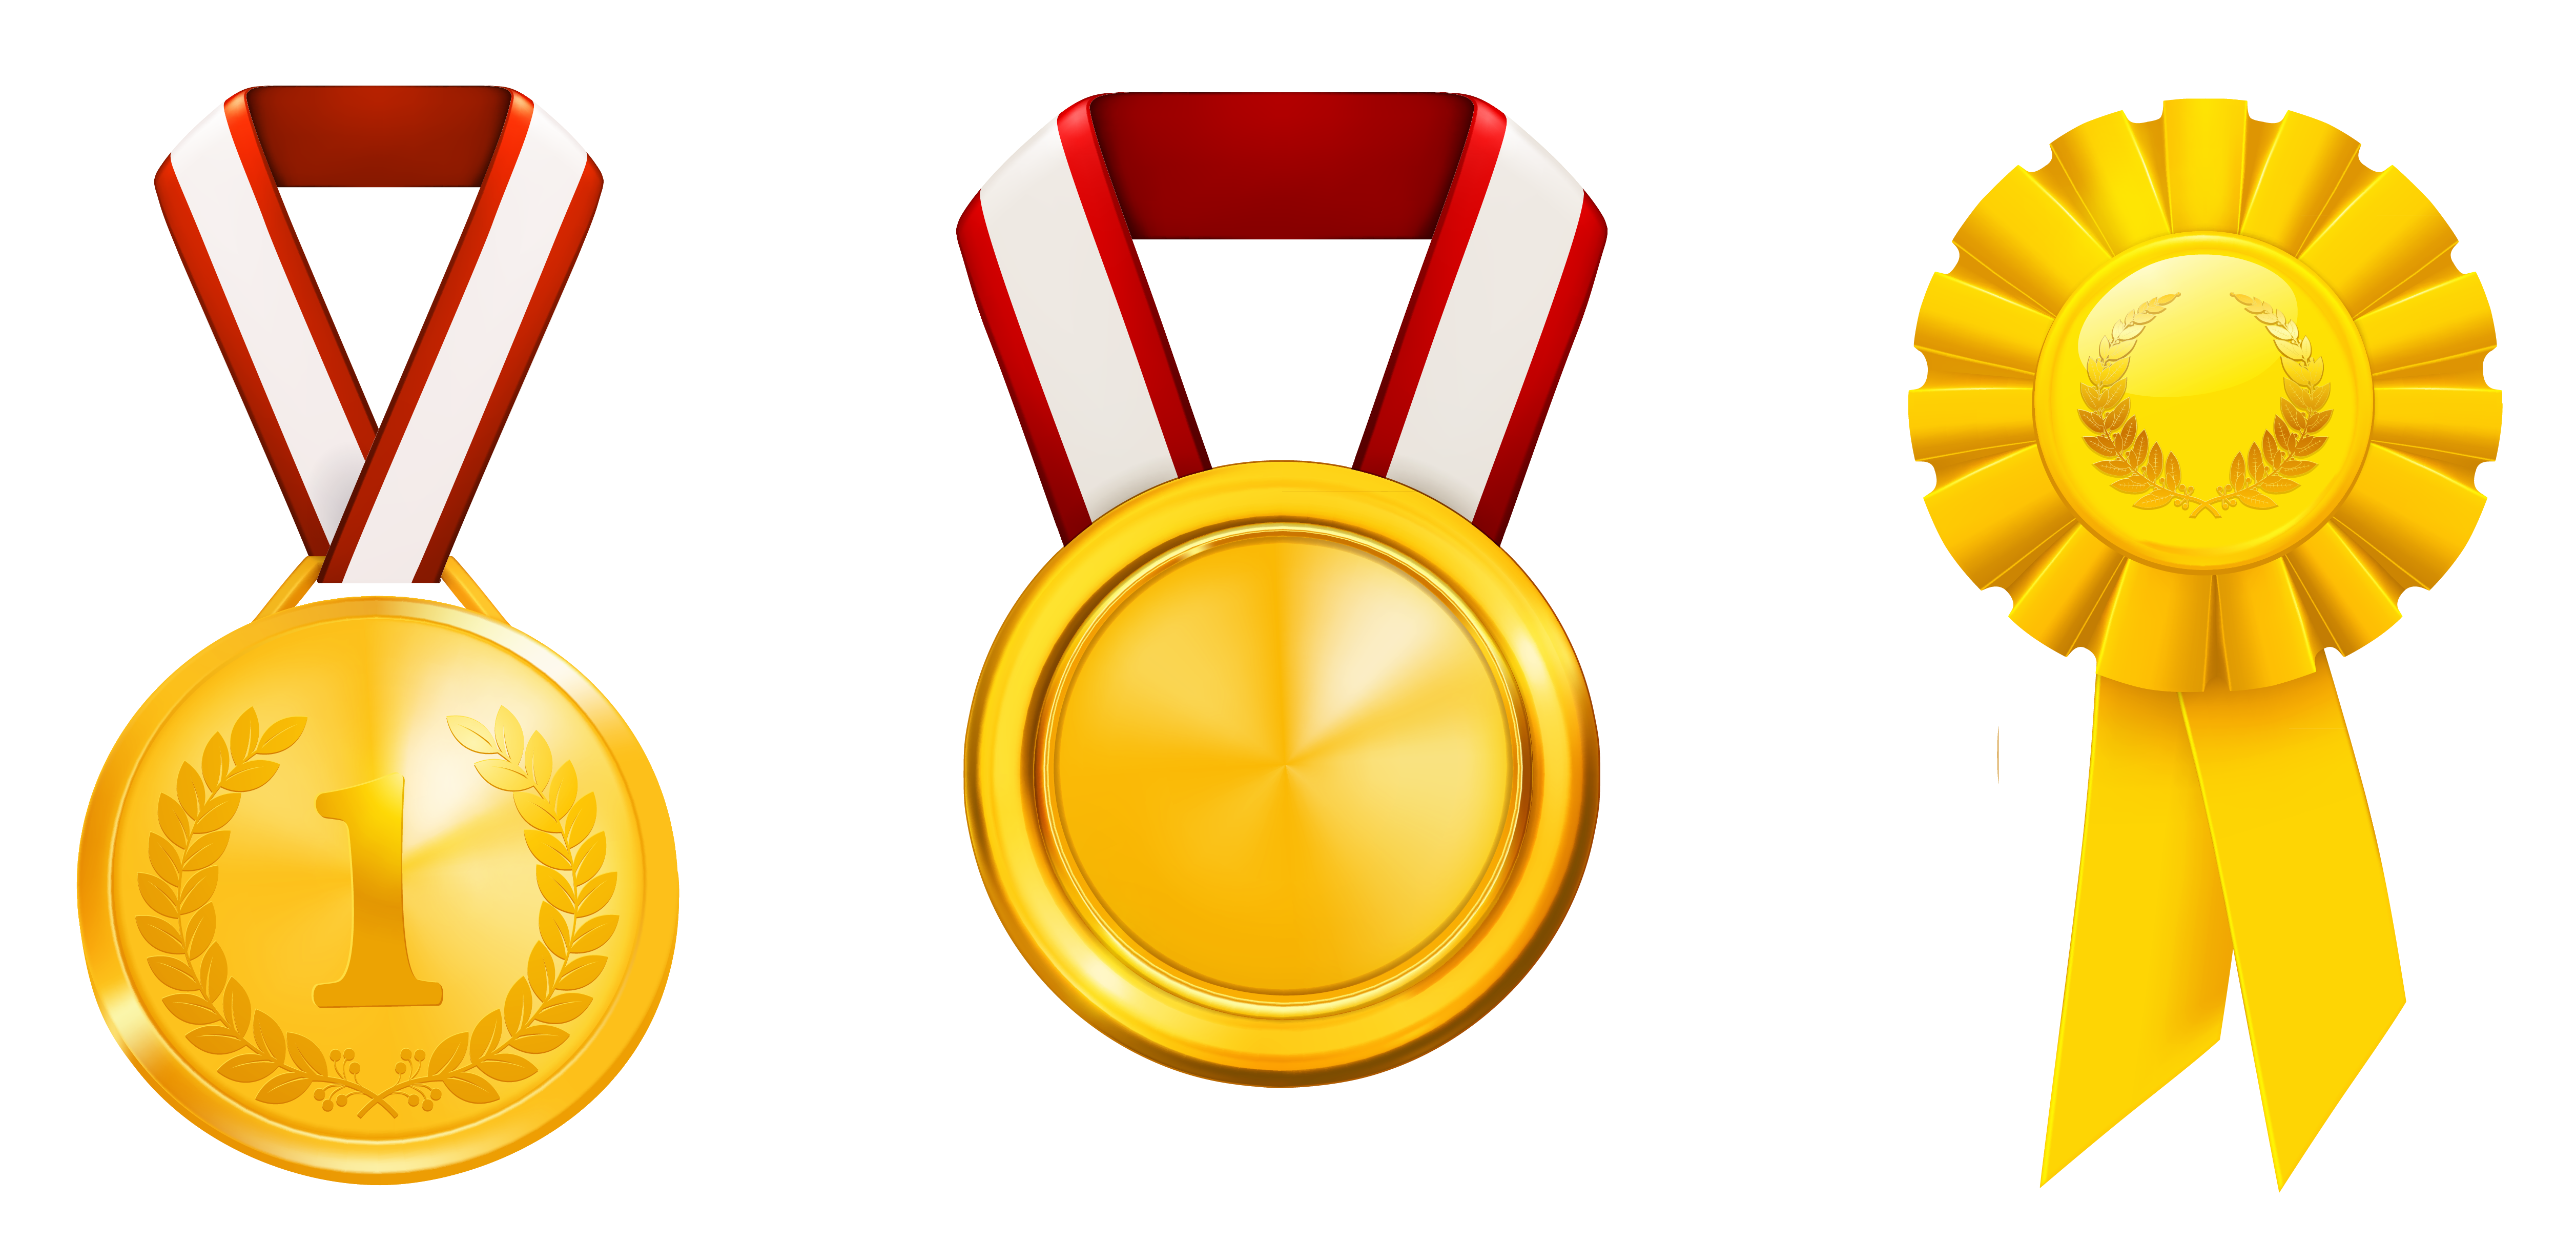 Prizes honors set png. Ladder clipart golden